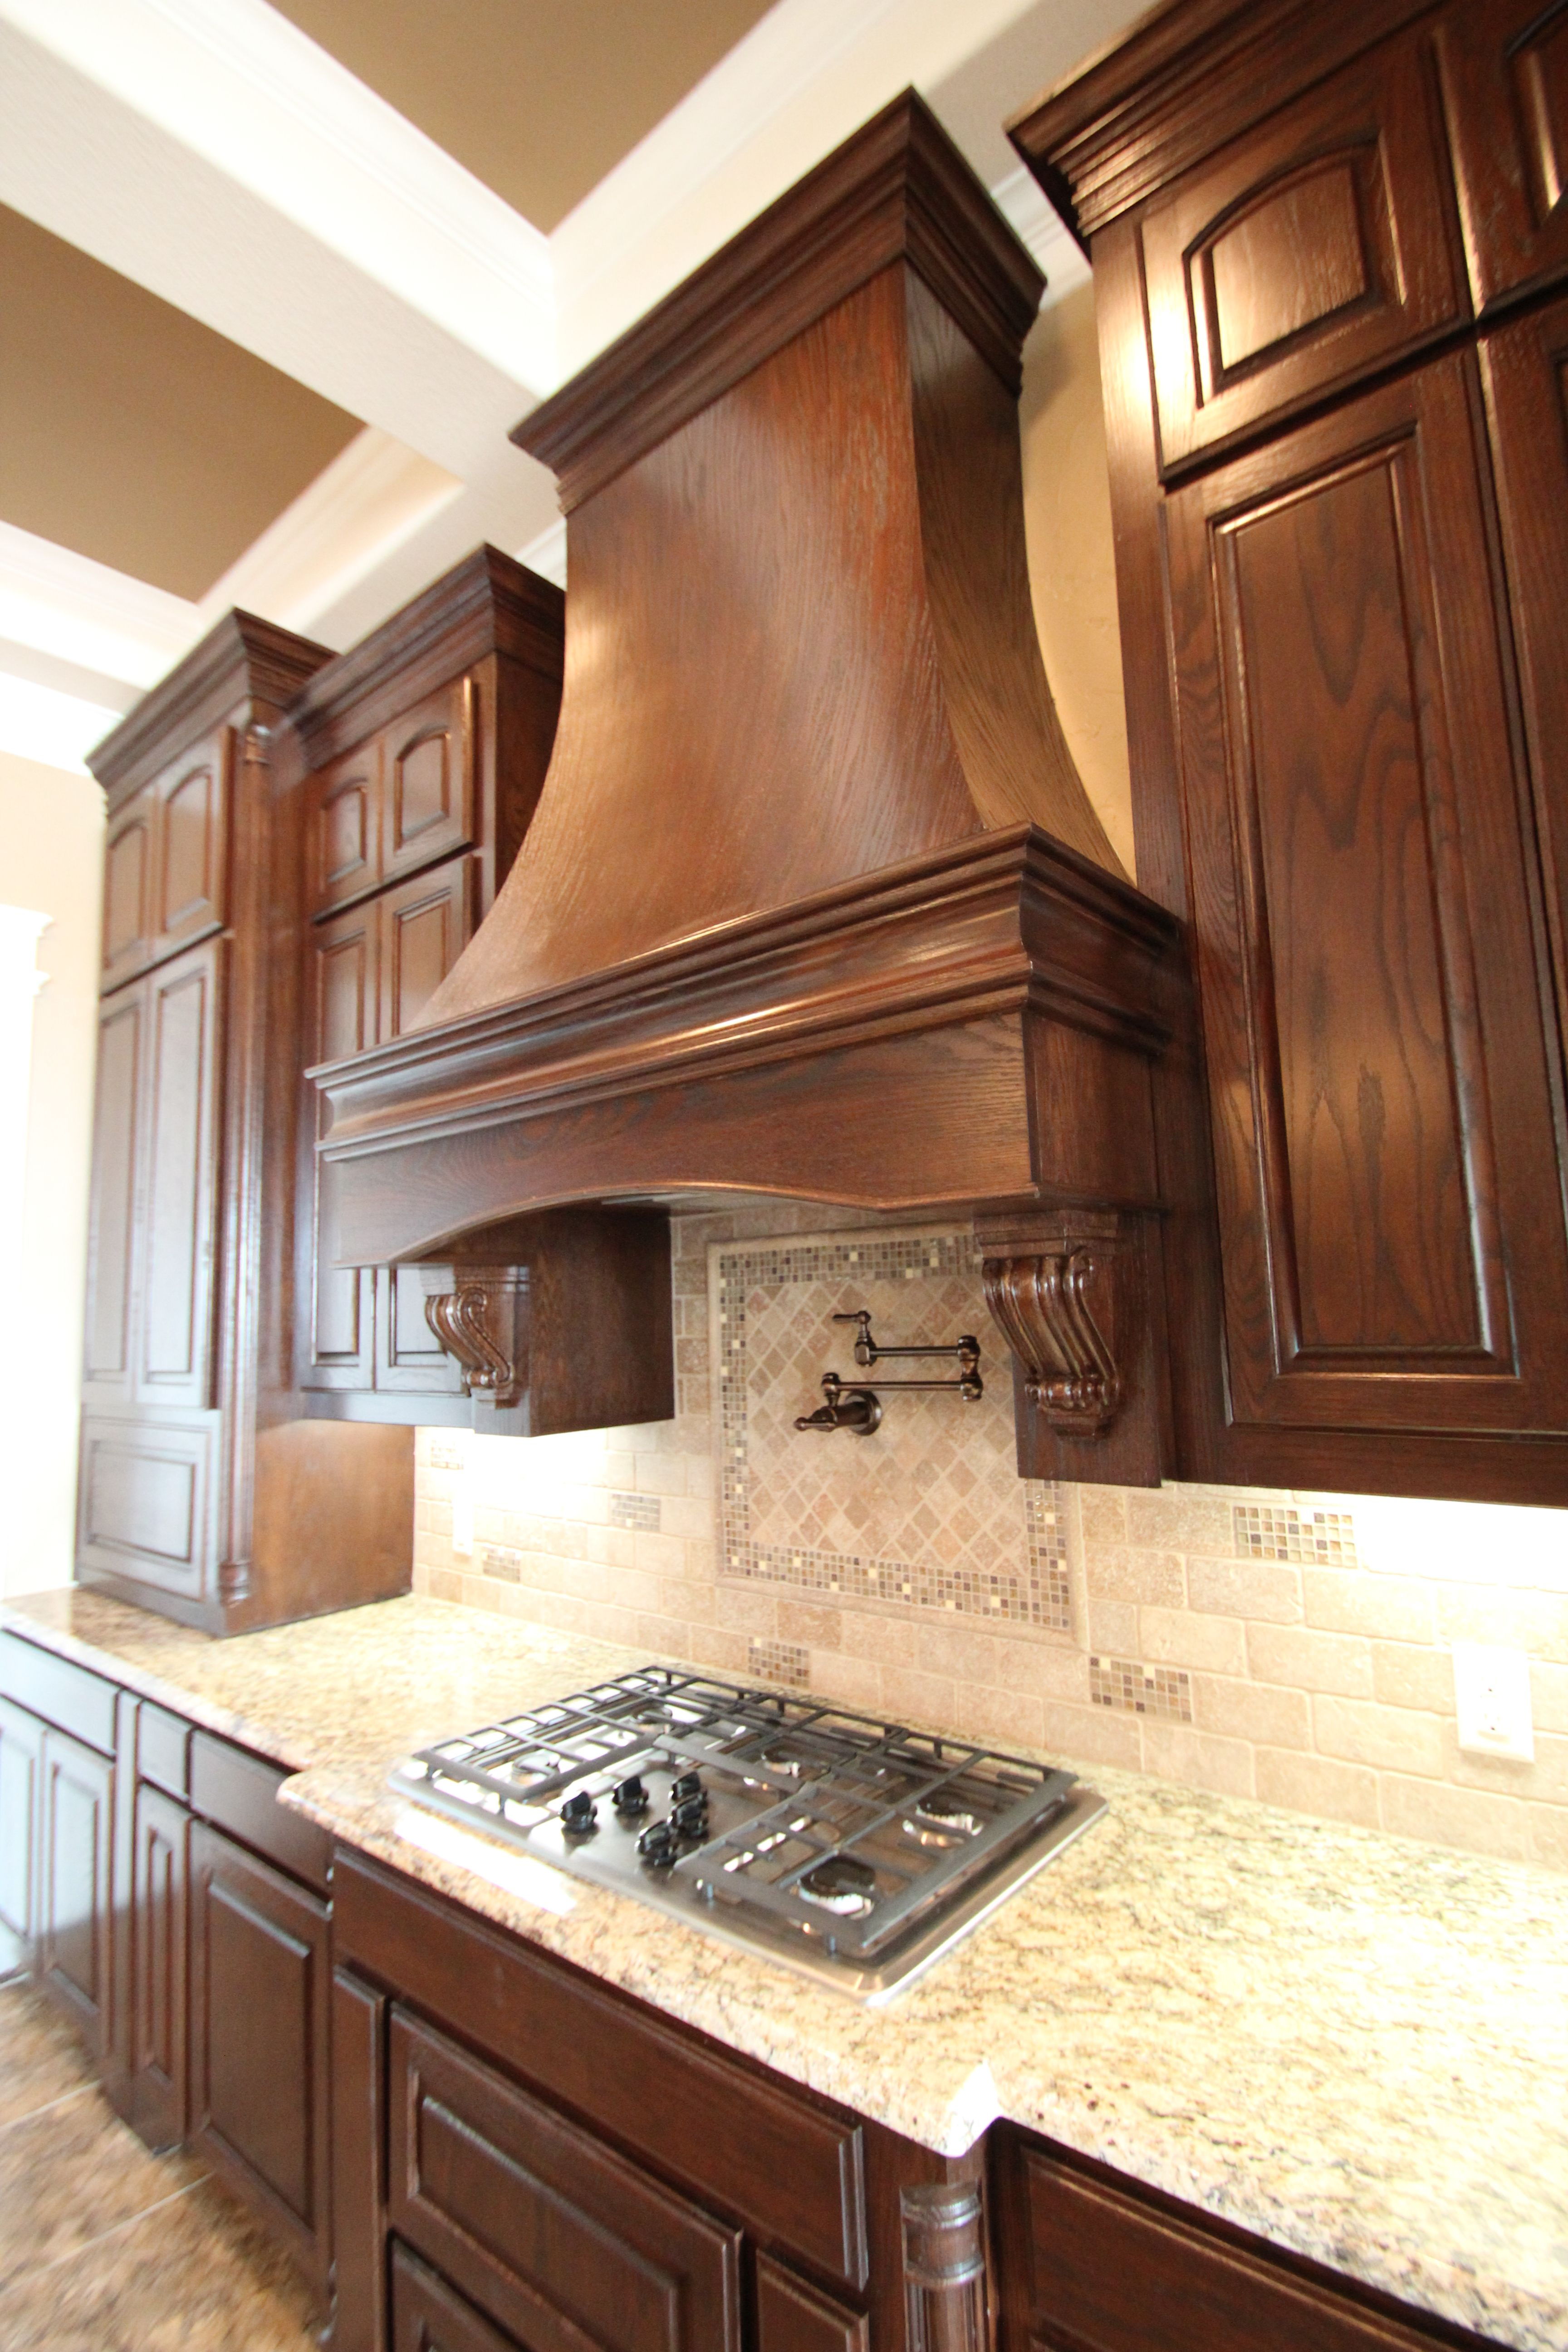 Couto Custom Home Stained Cabinet Finish Sherwin Williams Latte On Walls Sherwin Williams Hopsack In Ceili Kitchen Cabinets Staining Cabinets Cabinet Finishes